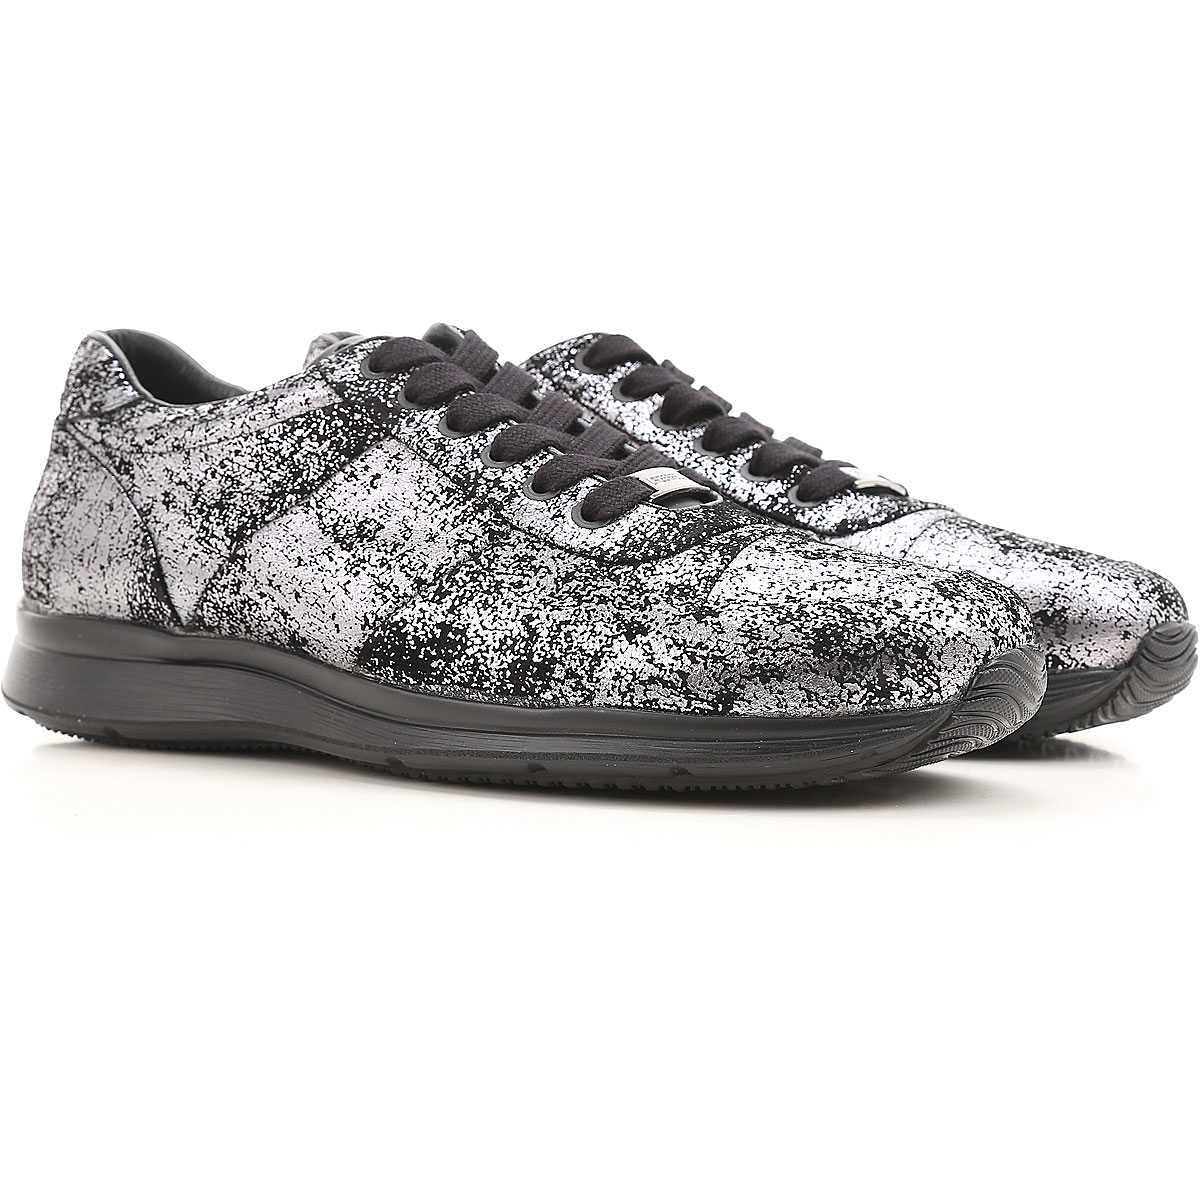 Karl Lagerfeld Sneakers for Men On Sale Silver UK - GOOFASH